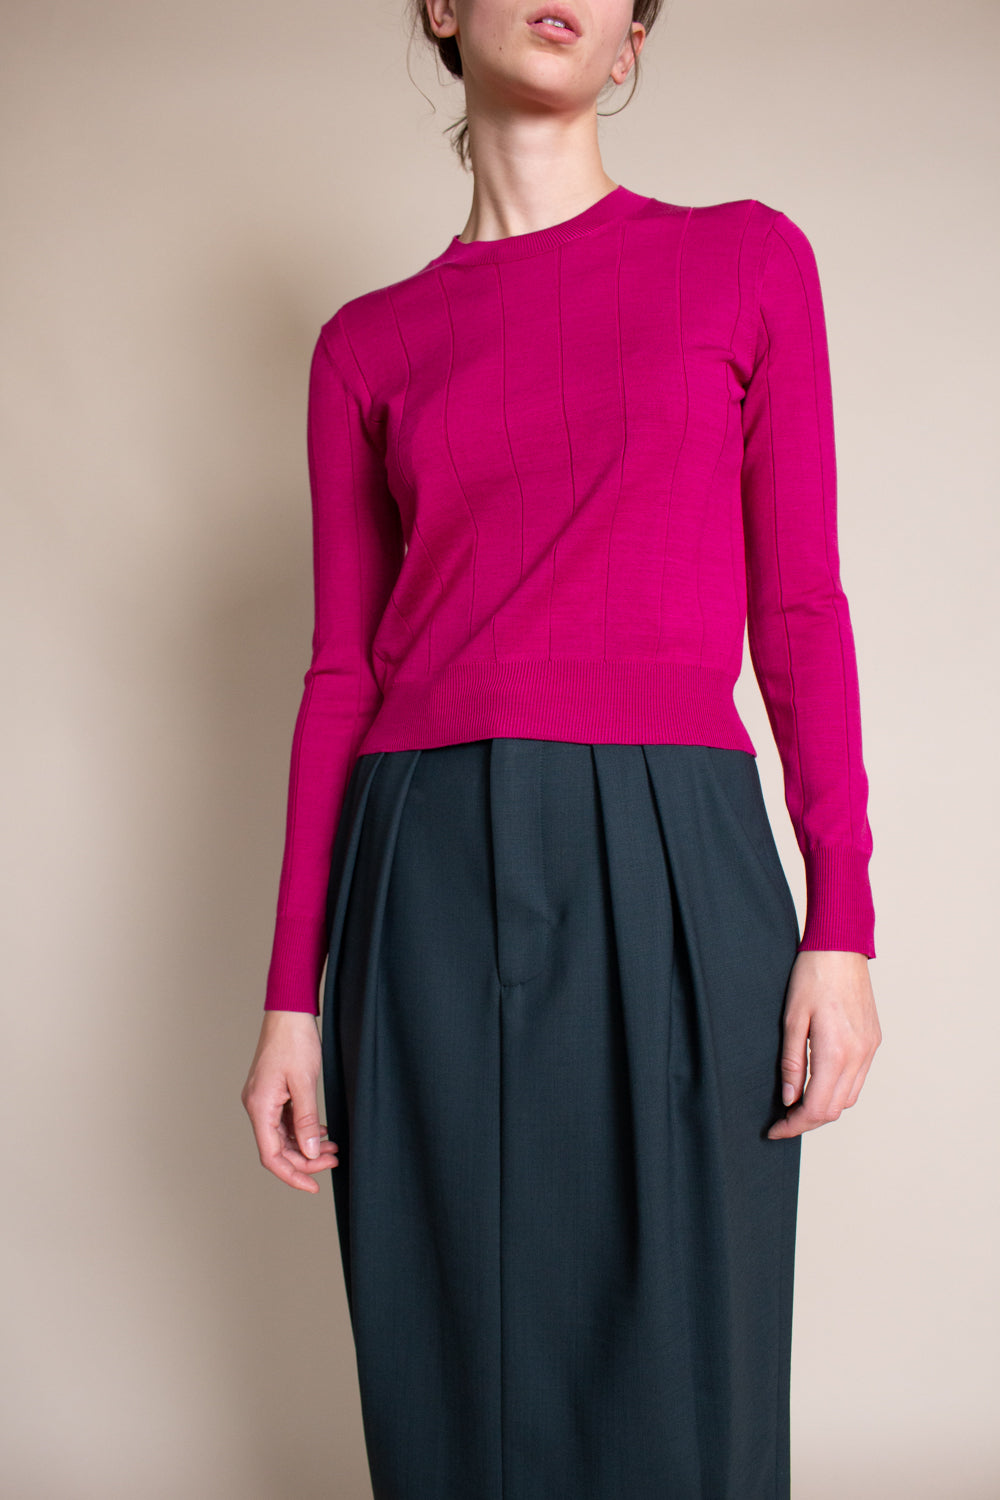 Tali Top in Fuchsia